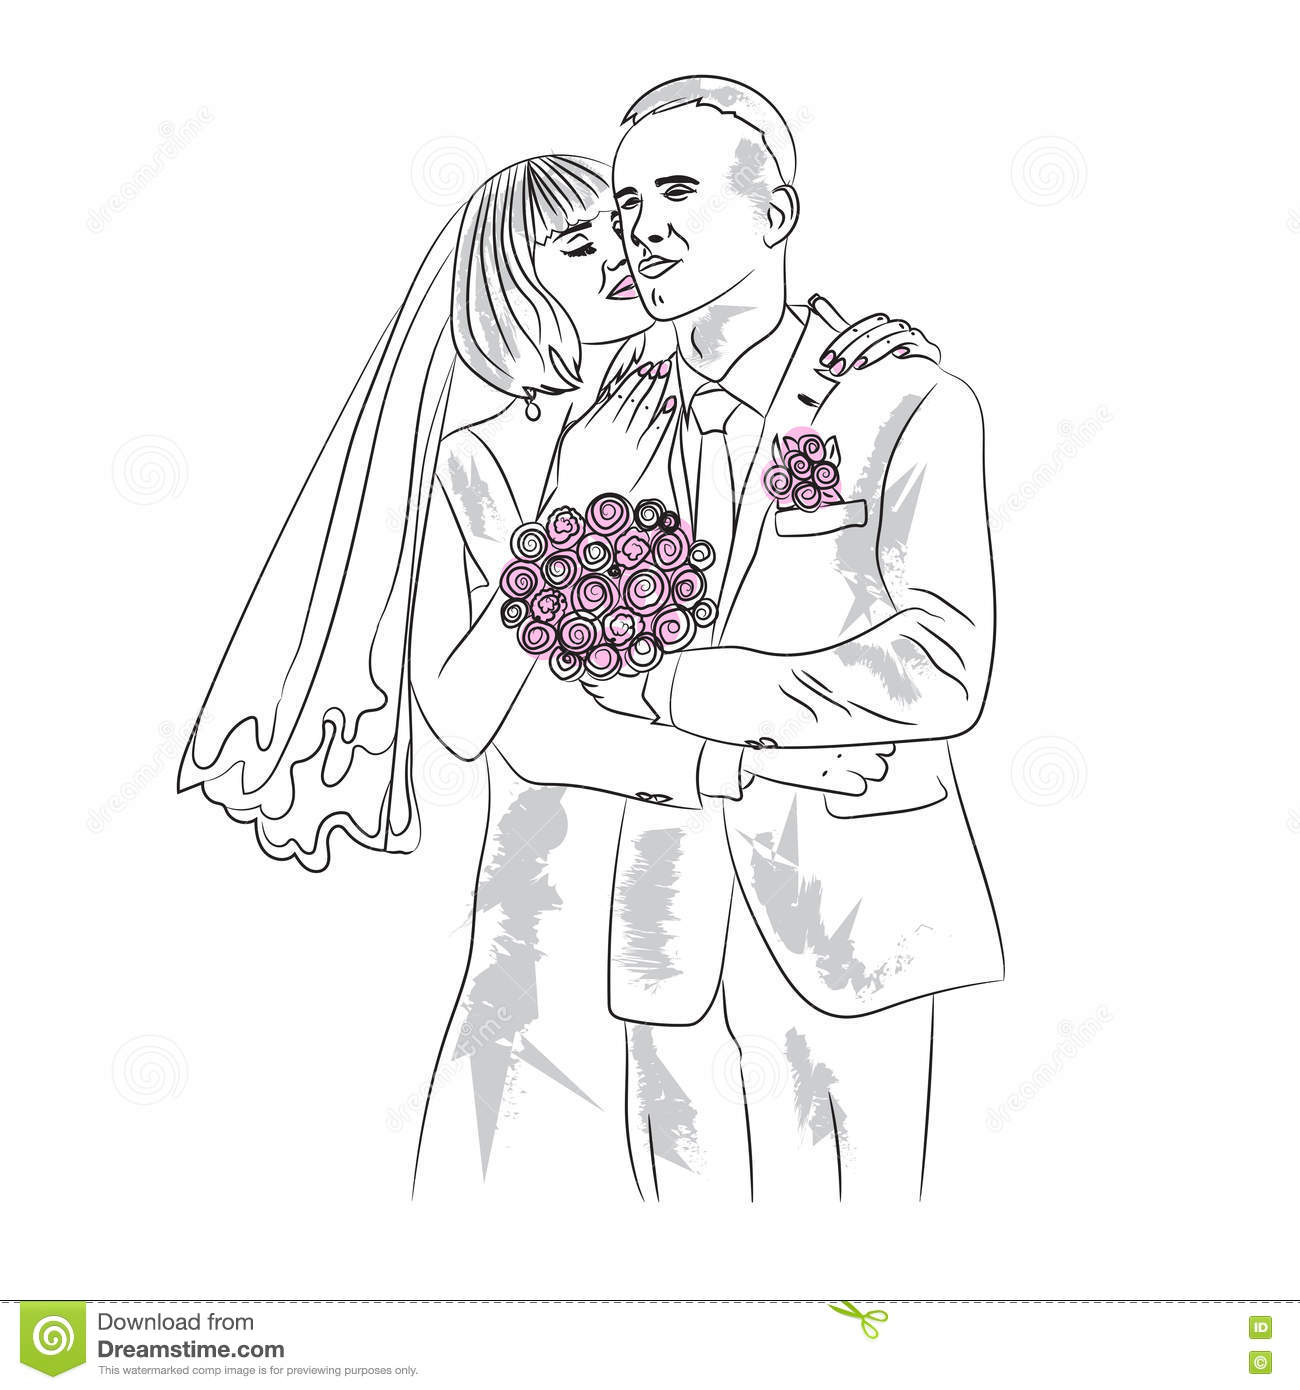 the bride and groom in they wedding day stock vector illustration